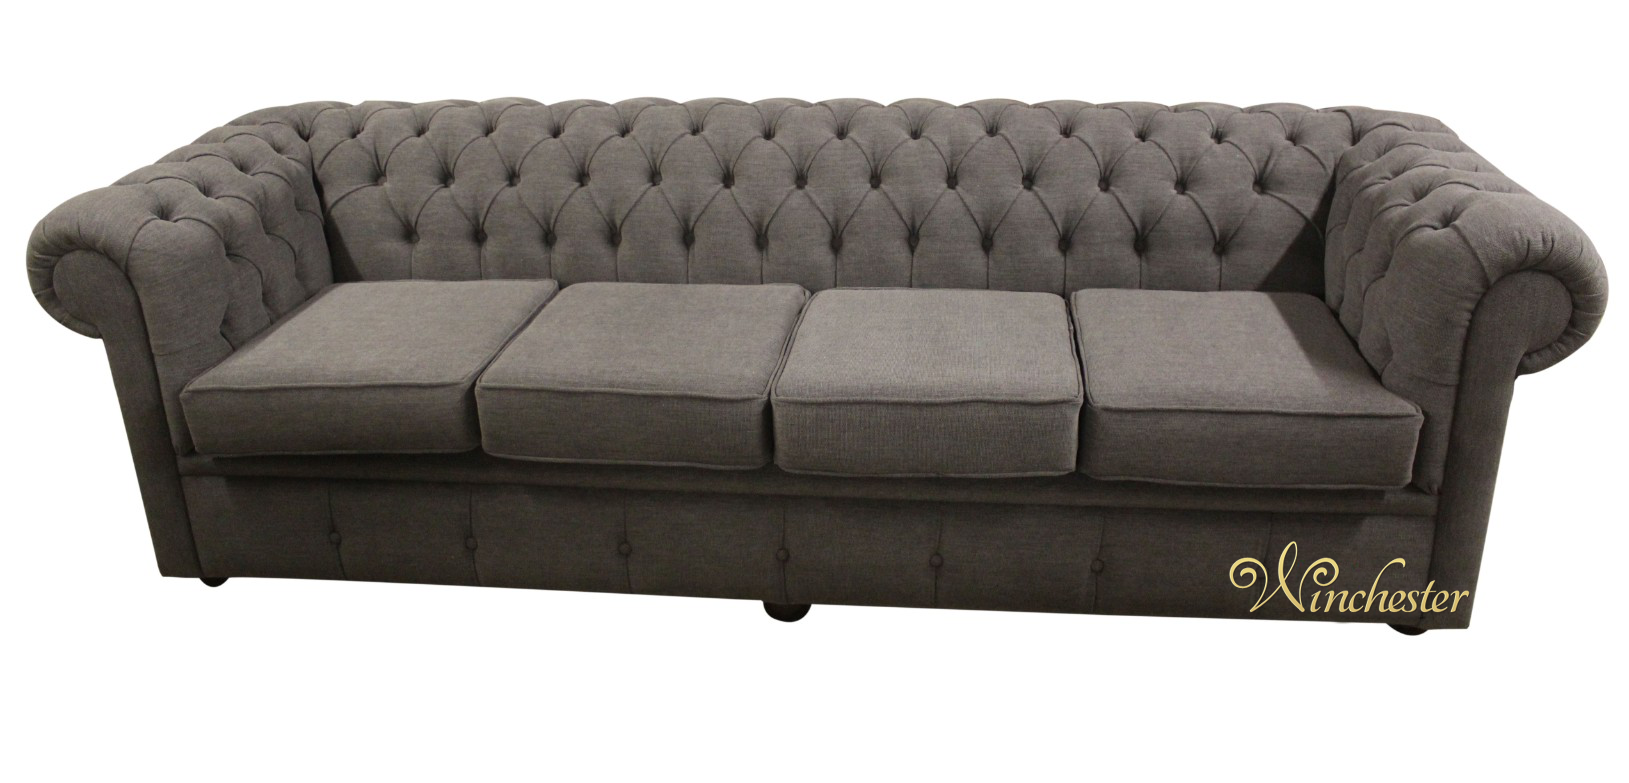 chesterfield 4 seater settee verity steel grey fabric. Black Bedroom Furniture Sets. Home Design Ideas